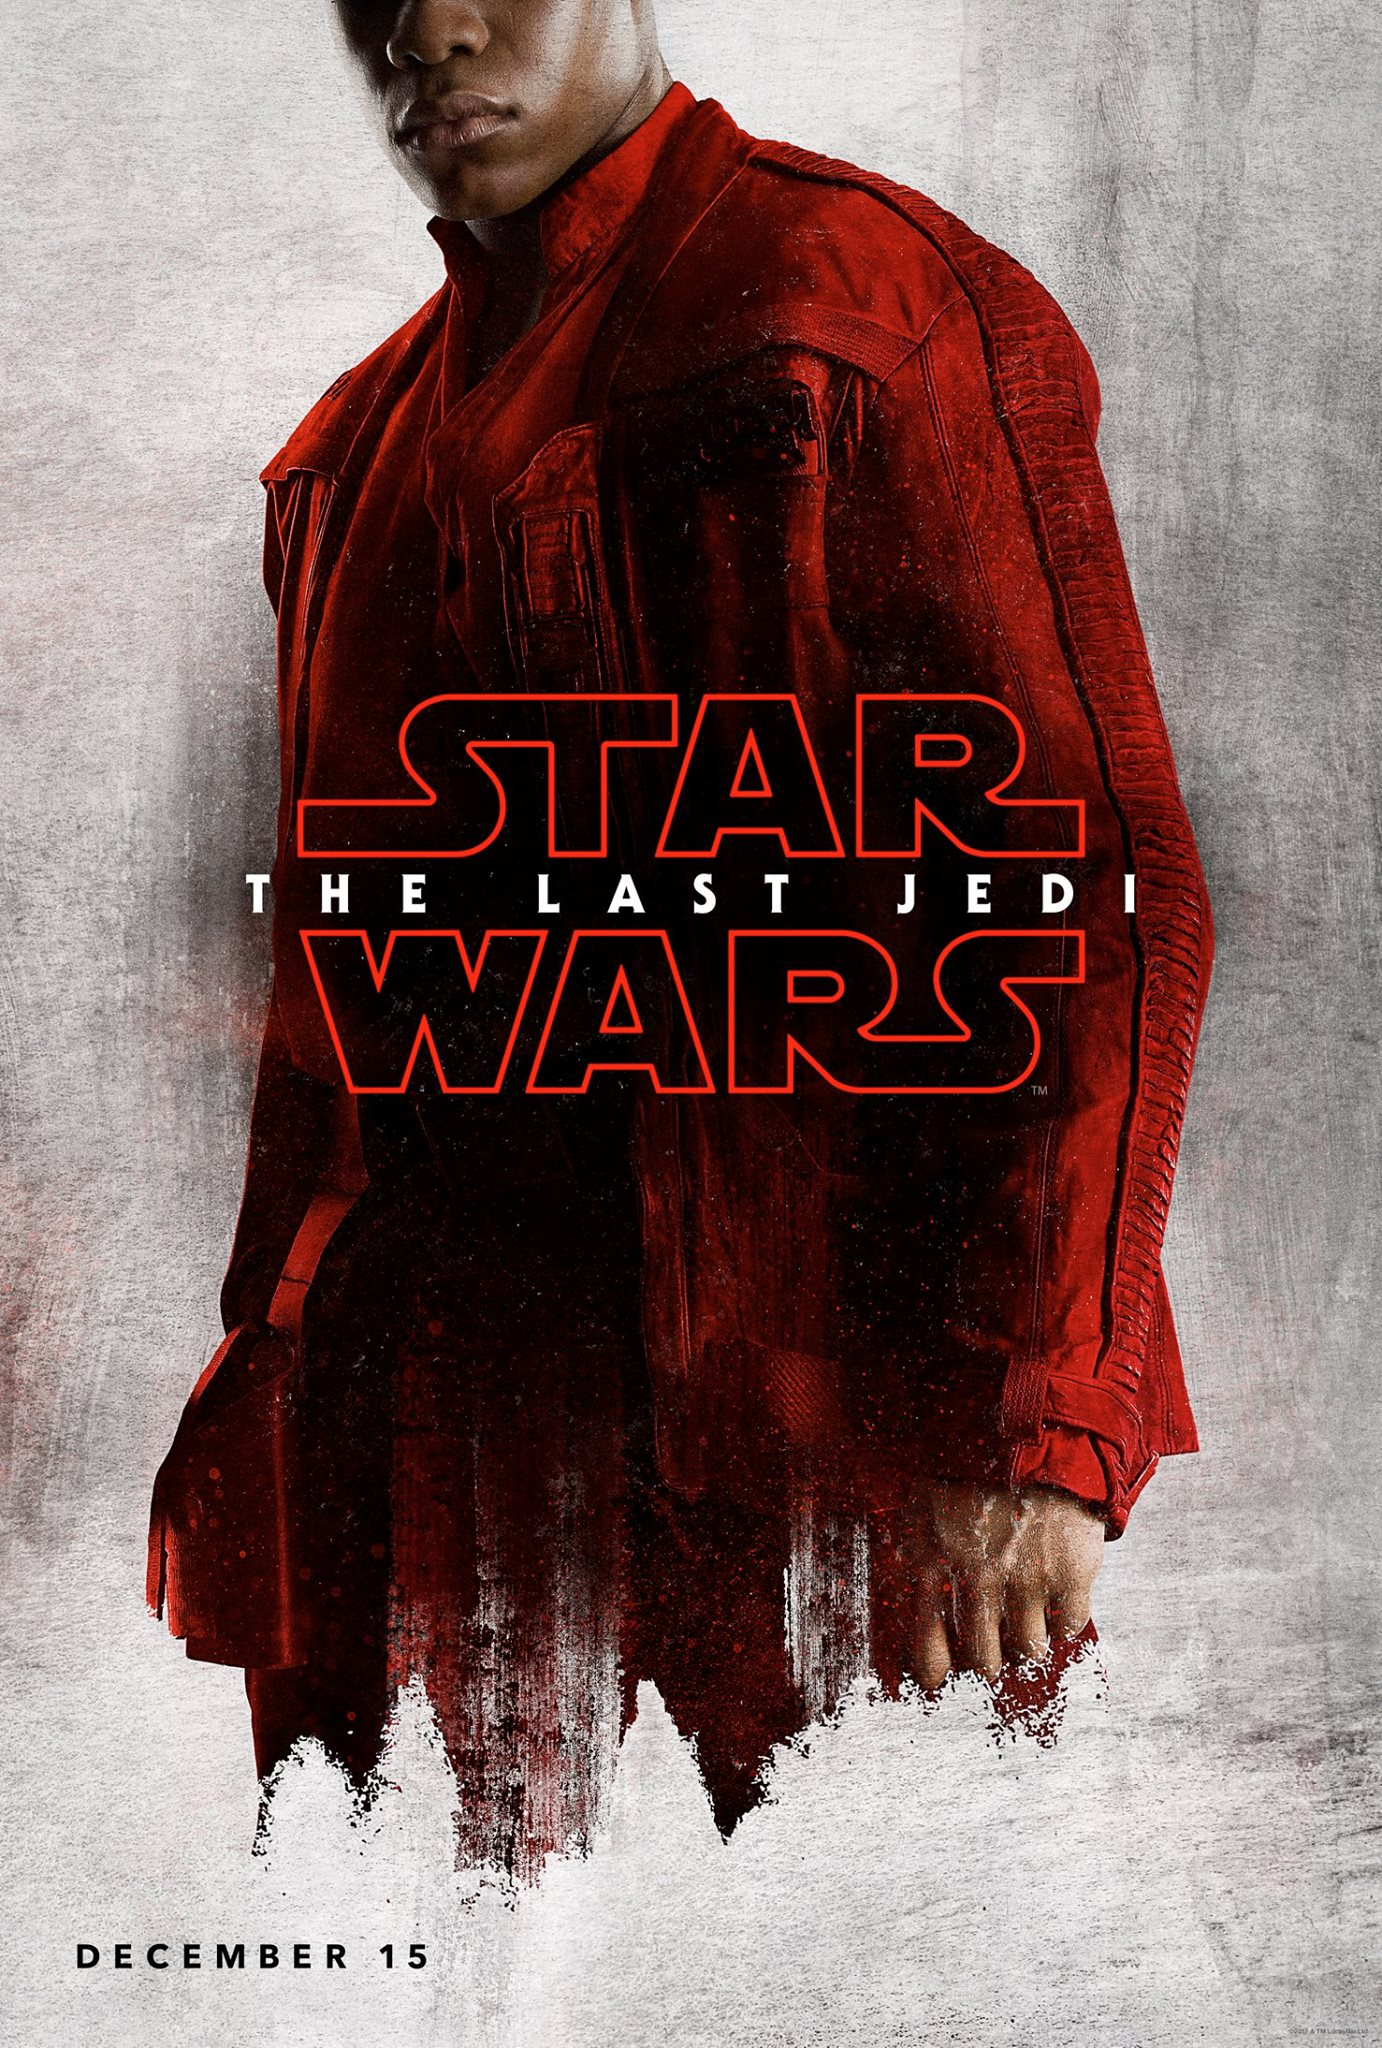 Lucasfilm Releases New Teaser Posters For Star Wars The Last Jedi